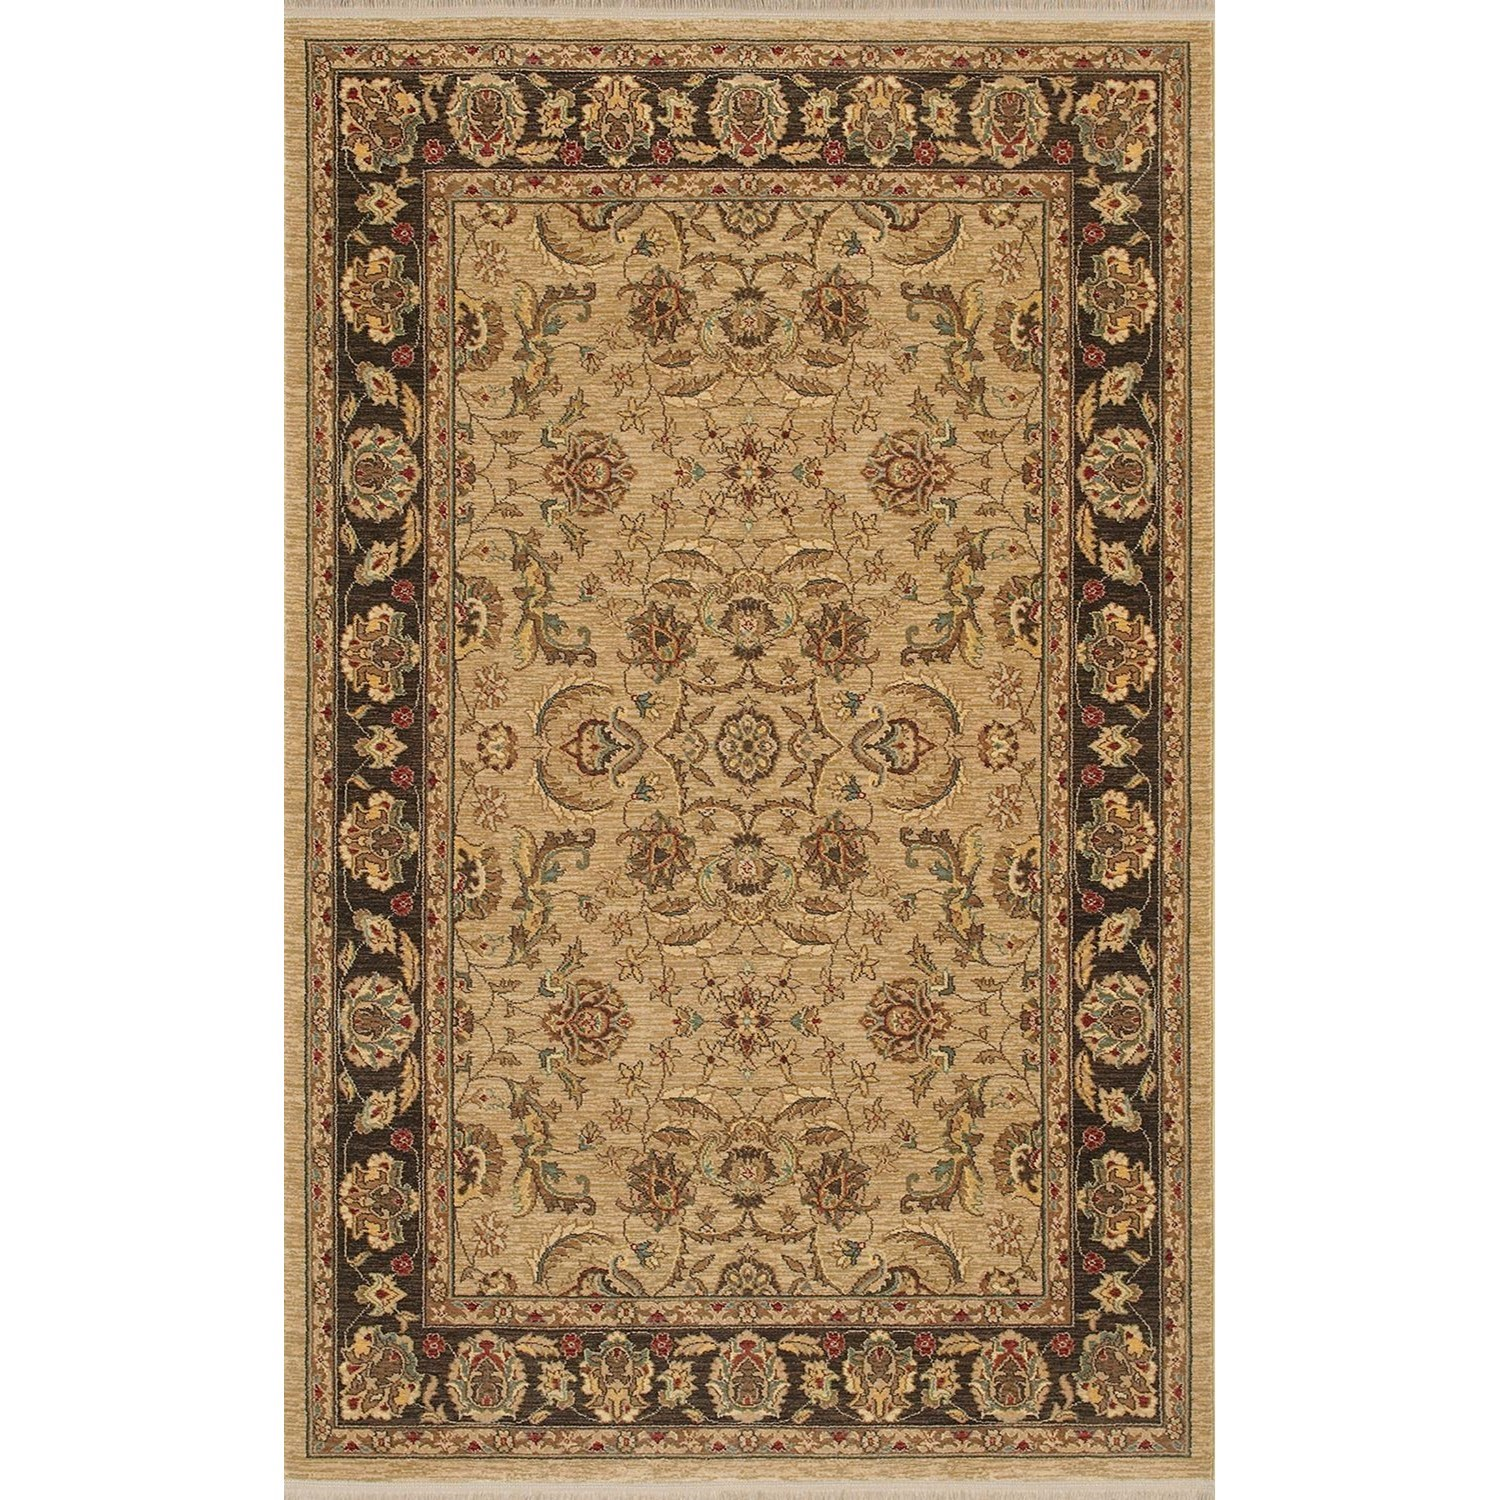 Ashara 4'3x6' Toscano Rug by Karastan Rugs at Alison Craig Home Furnishings